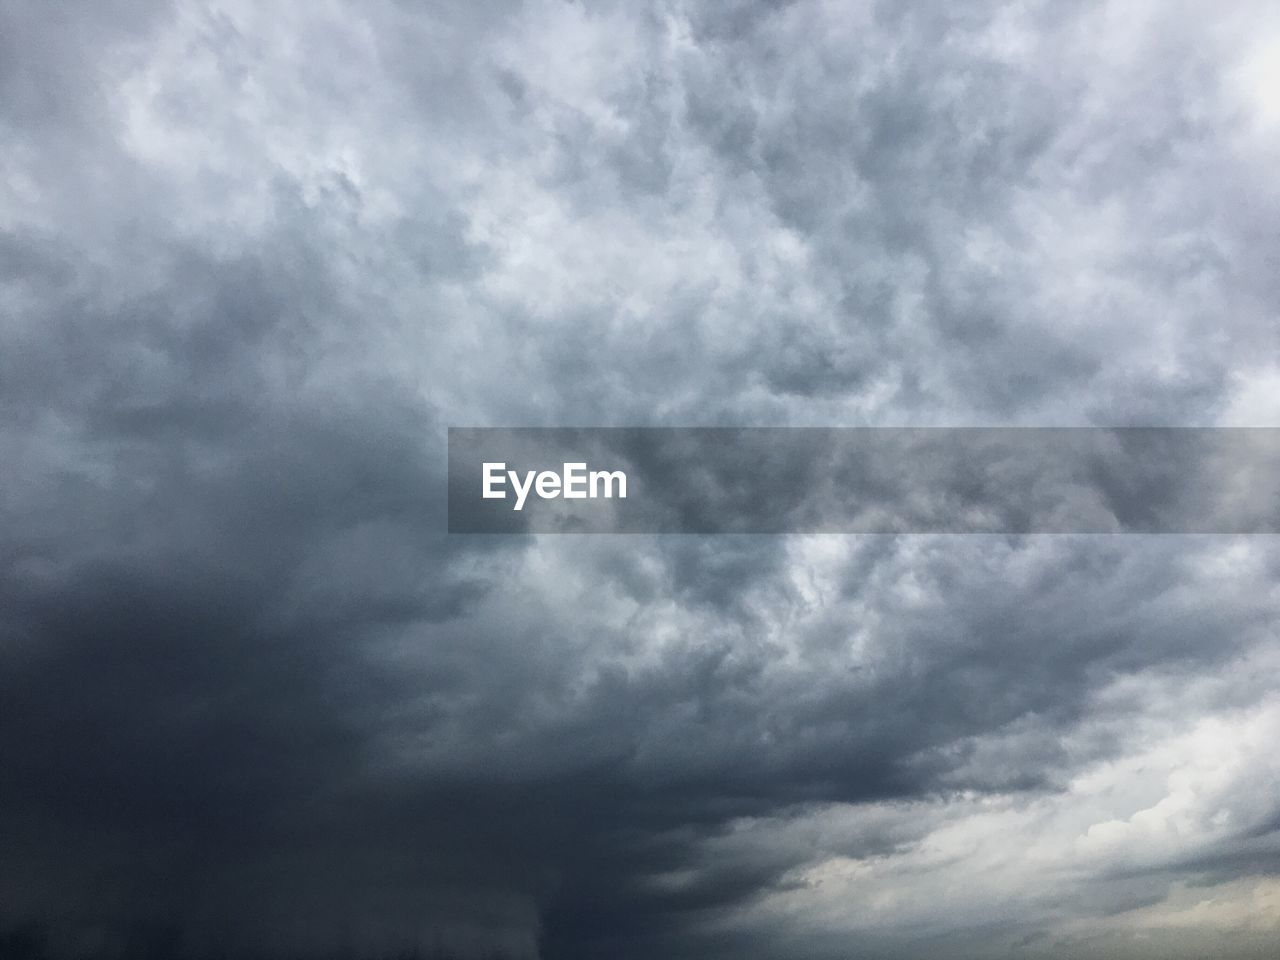 cloud - sky, sky, beauty in nature, storm, low angle view, overcast, scenics - nature, no people, storm cloud, nature, dramatic sky, cloudscape, tranquility, outdoors, day, tranquil scene, thunderstorm, environment, backgrounds, ominous, power in nature, meteorology